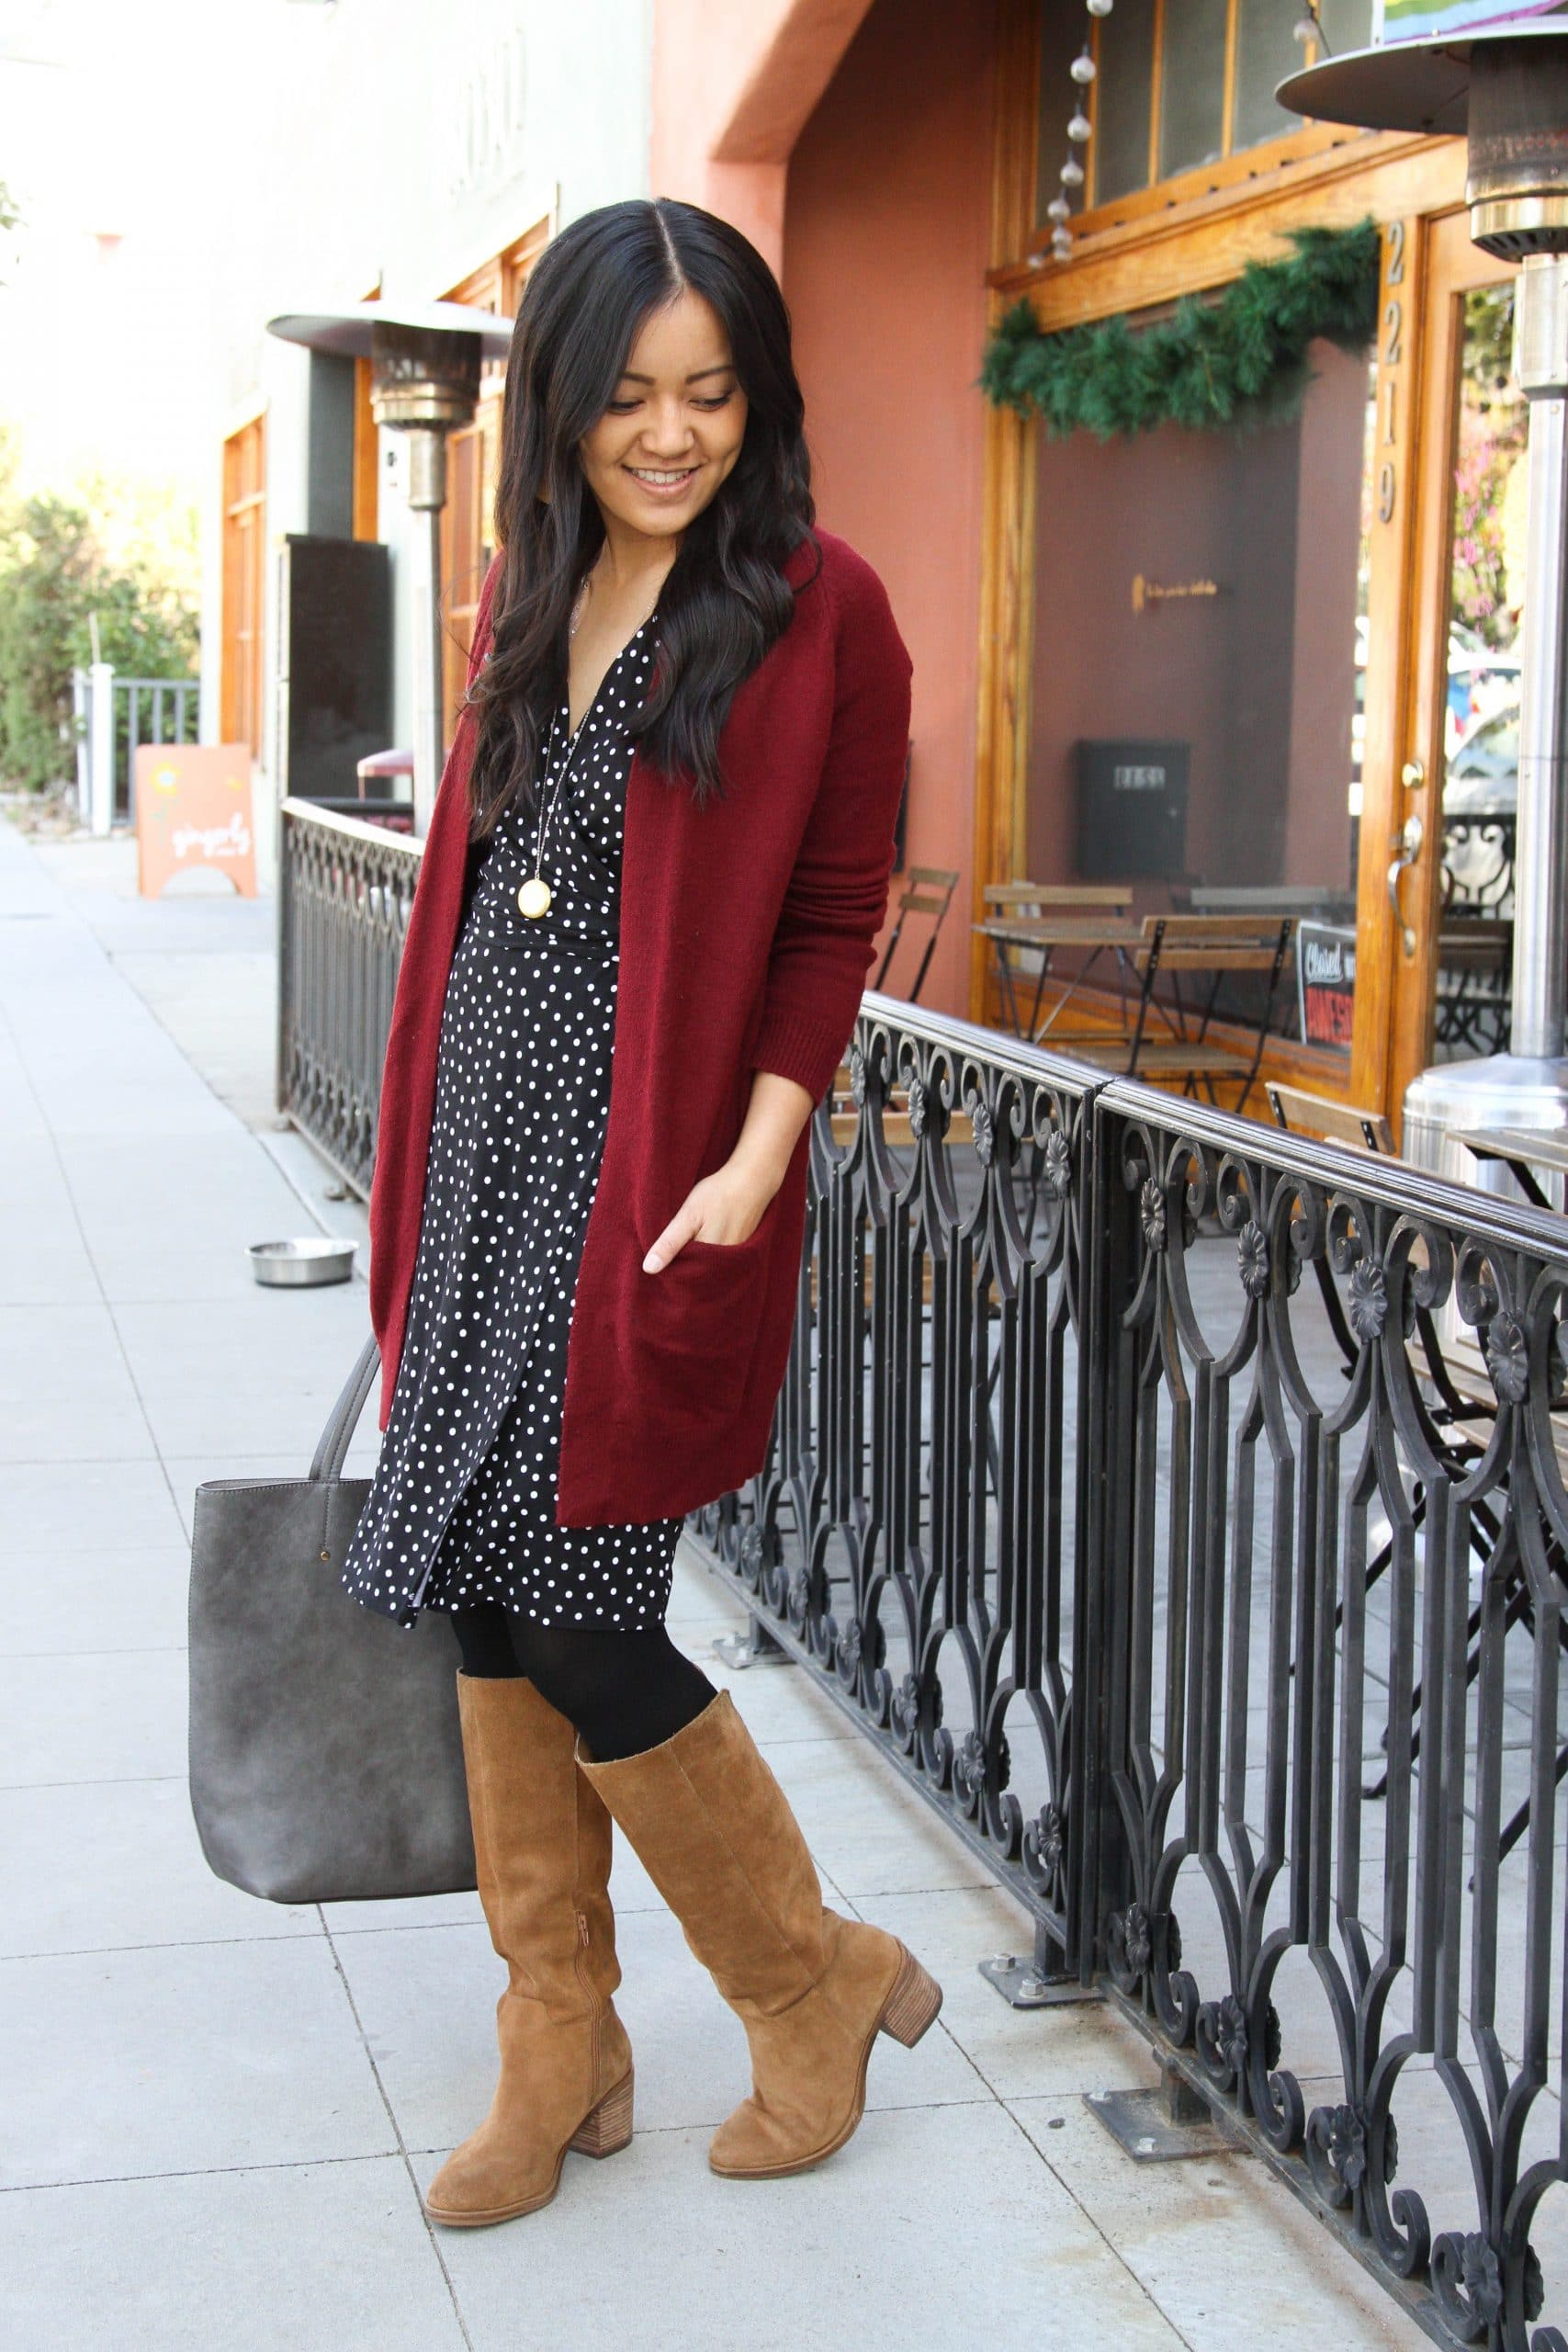 black polka dot dress + maroon long sweater + cognac suede boots + black tights